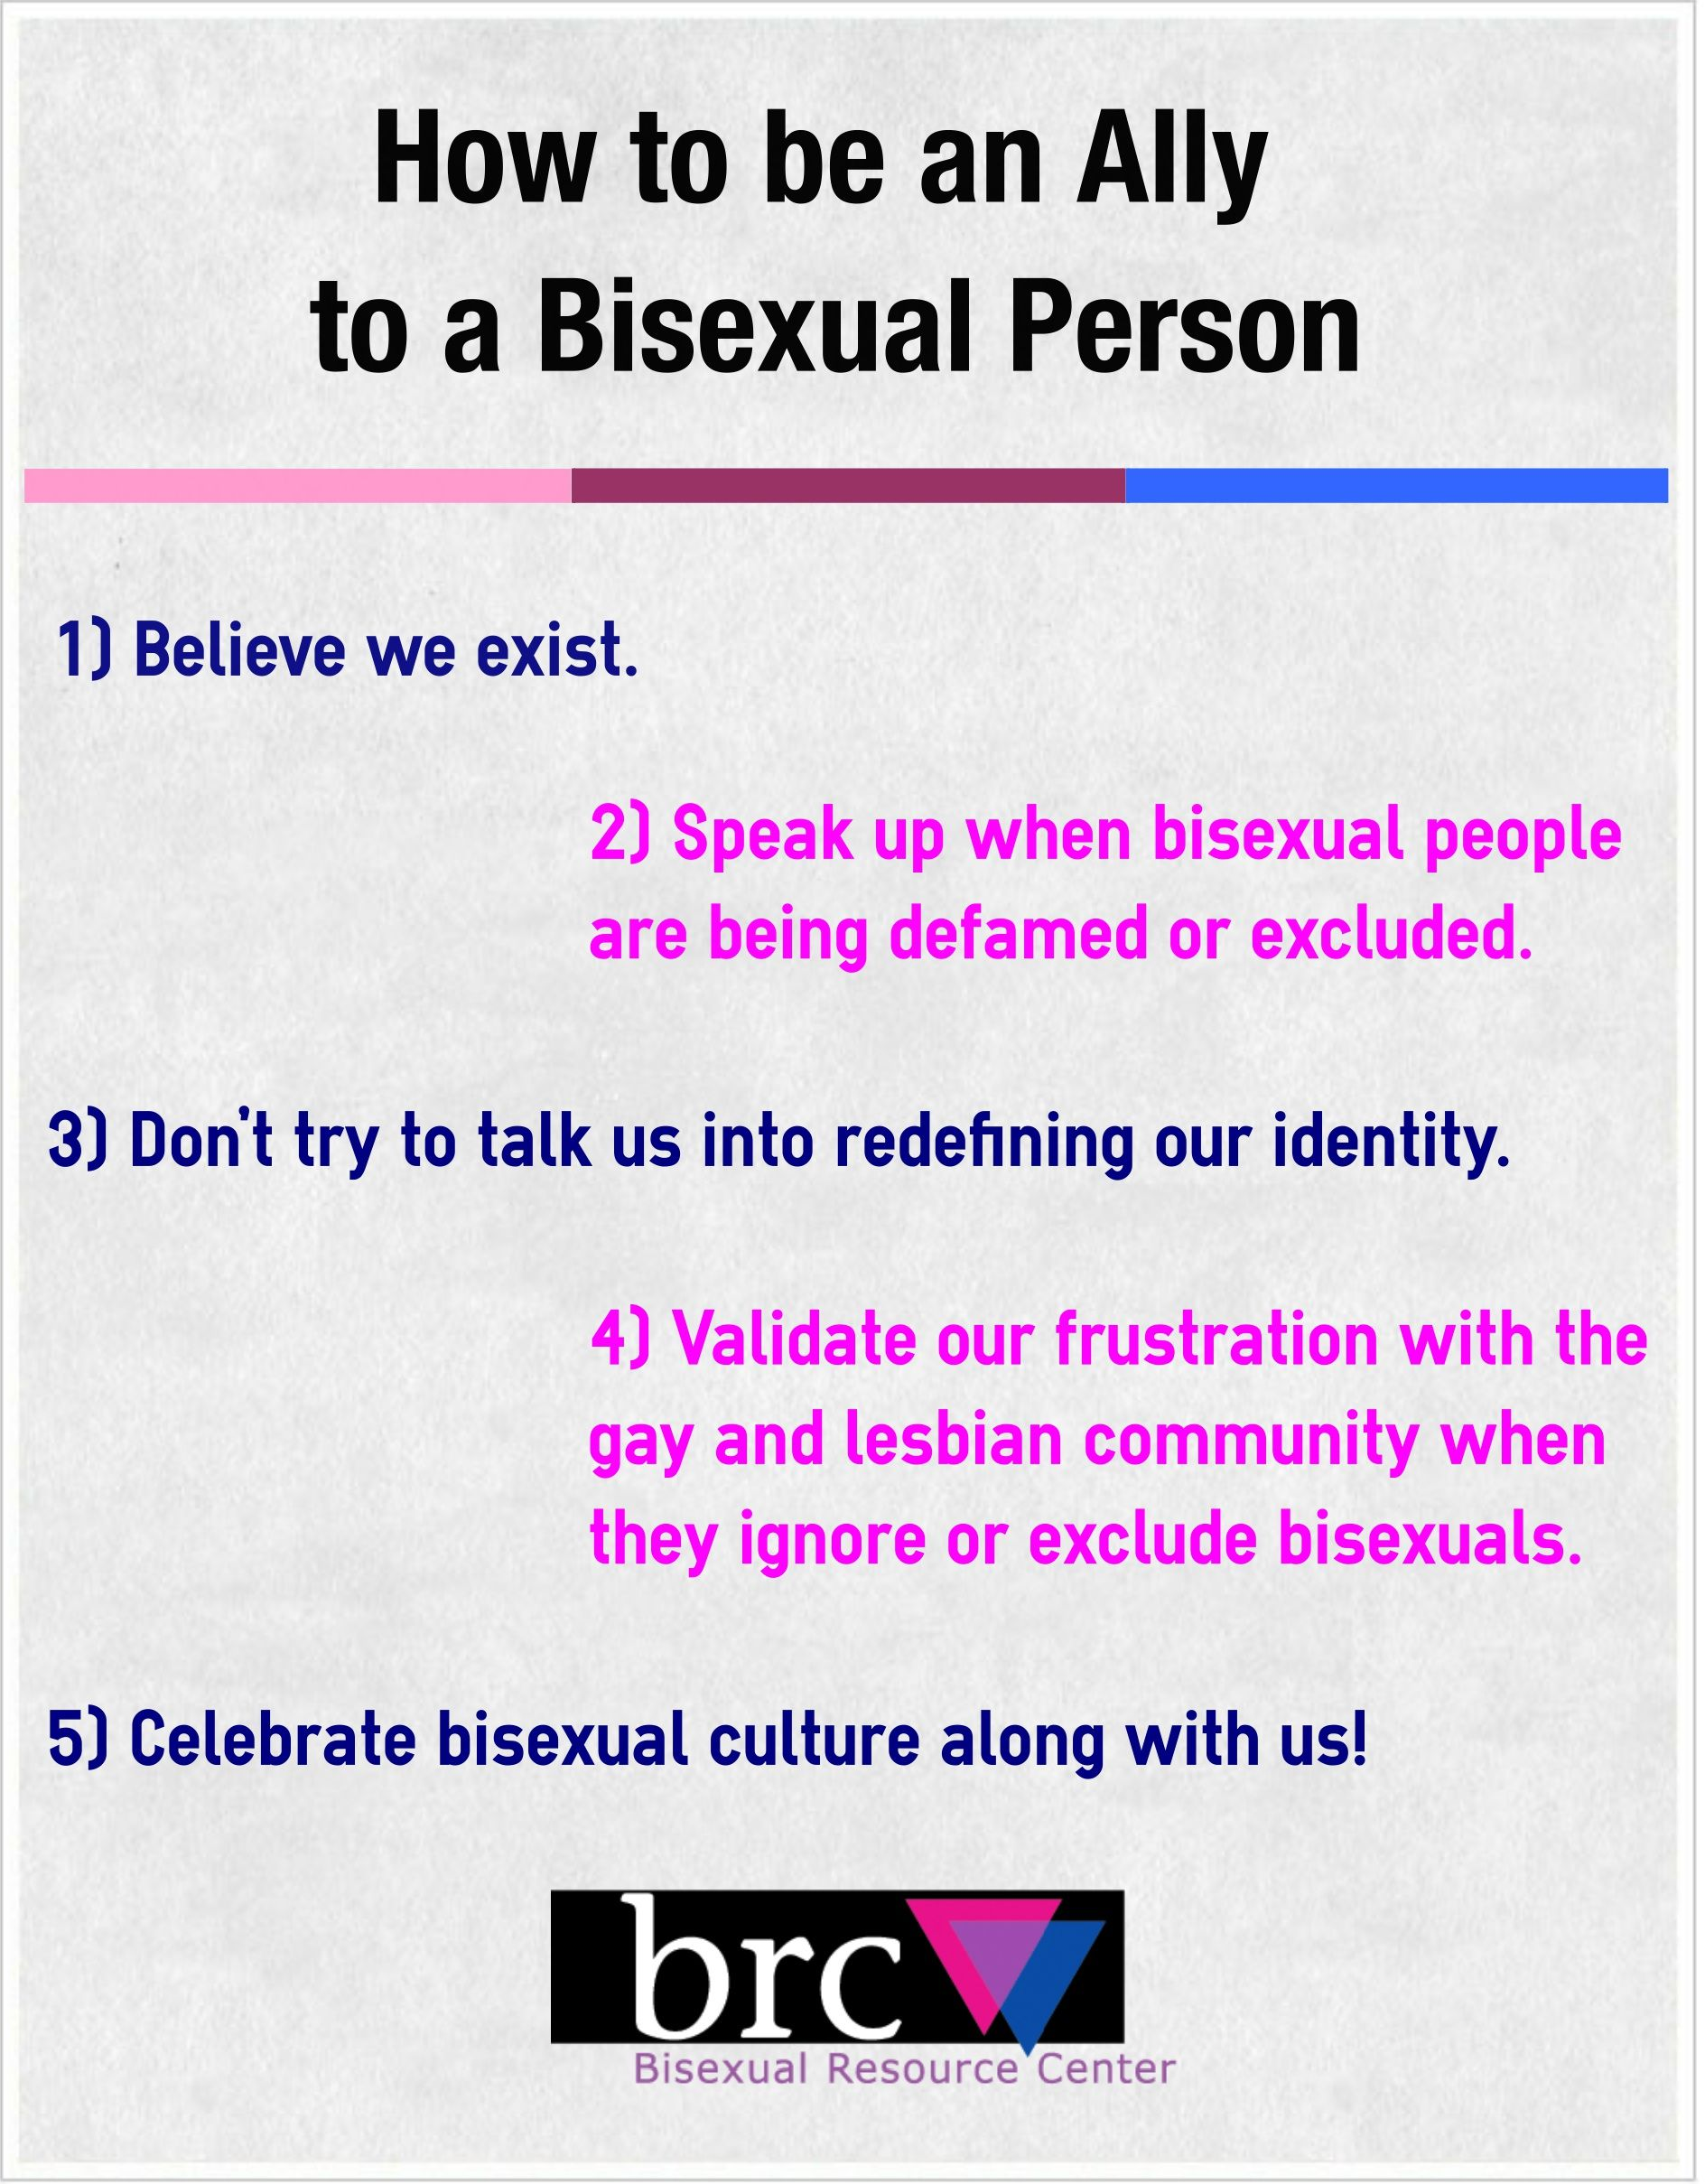 How to be bisexual